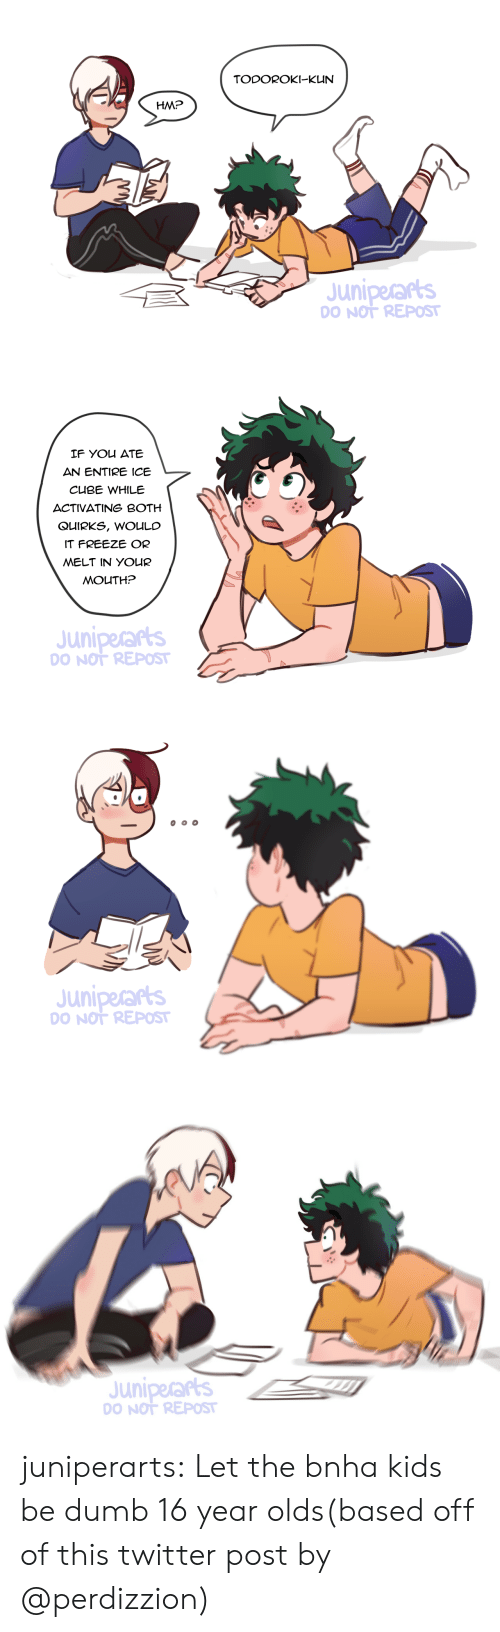 In Your Mouth: TODOROKI-KUN  HM?  Juniperars  O NOT REPOST   IF You ATE  AN ENTIRE ICE  CUBE WHILE  ACTIVATING BOTH  QUIRKS, WOULC  IT FREEZE OR  MELT IN YOUR  MOUTH?  Juniperarts  O NOT REPOST   Juniperars  O NOT REPOST   Juniperars  O NOT REPOST juniperarts: Let the bnha kids be dumb 16 year olds(based off of this twitter post by @perdizzion)